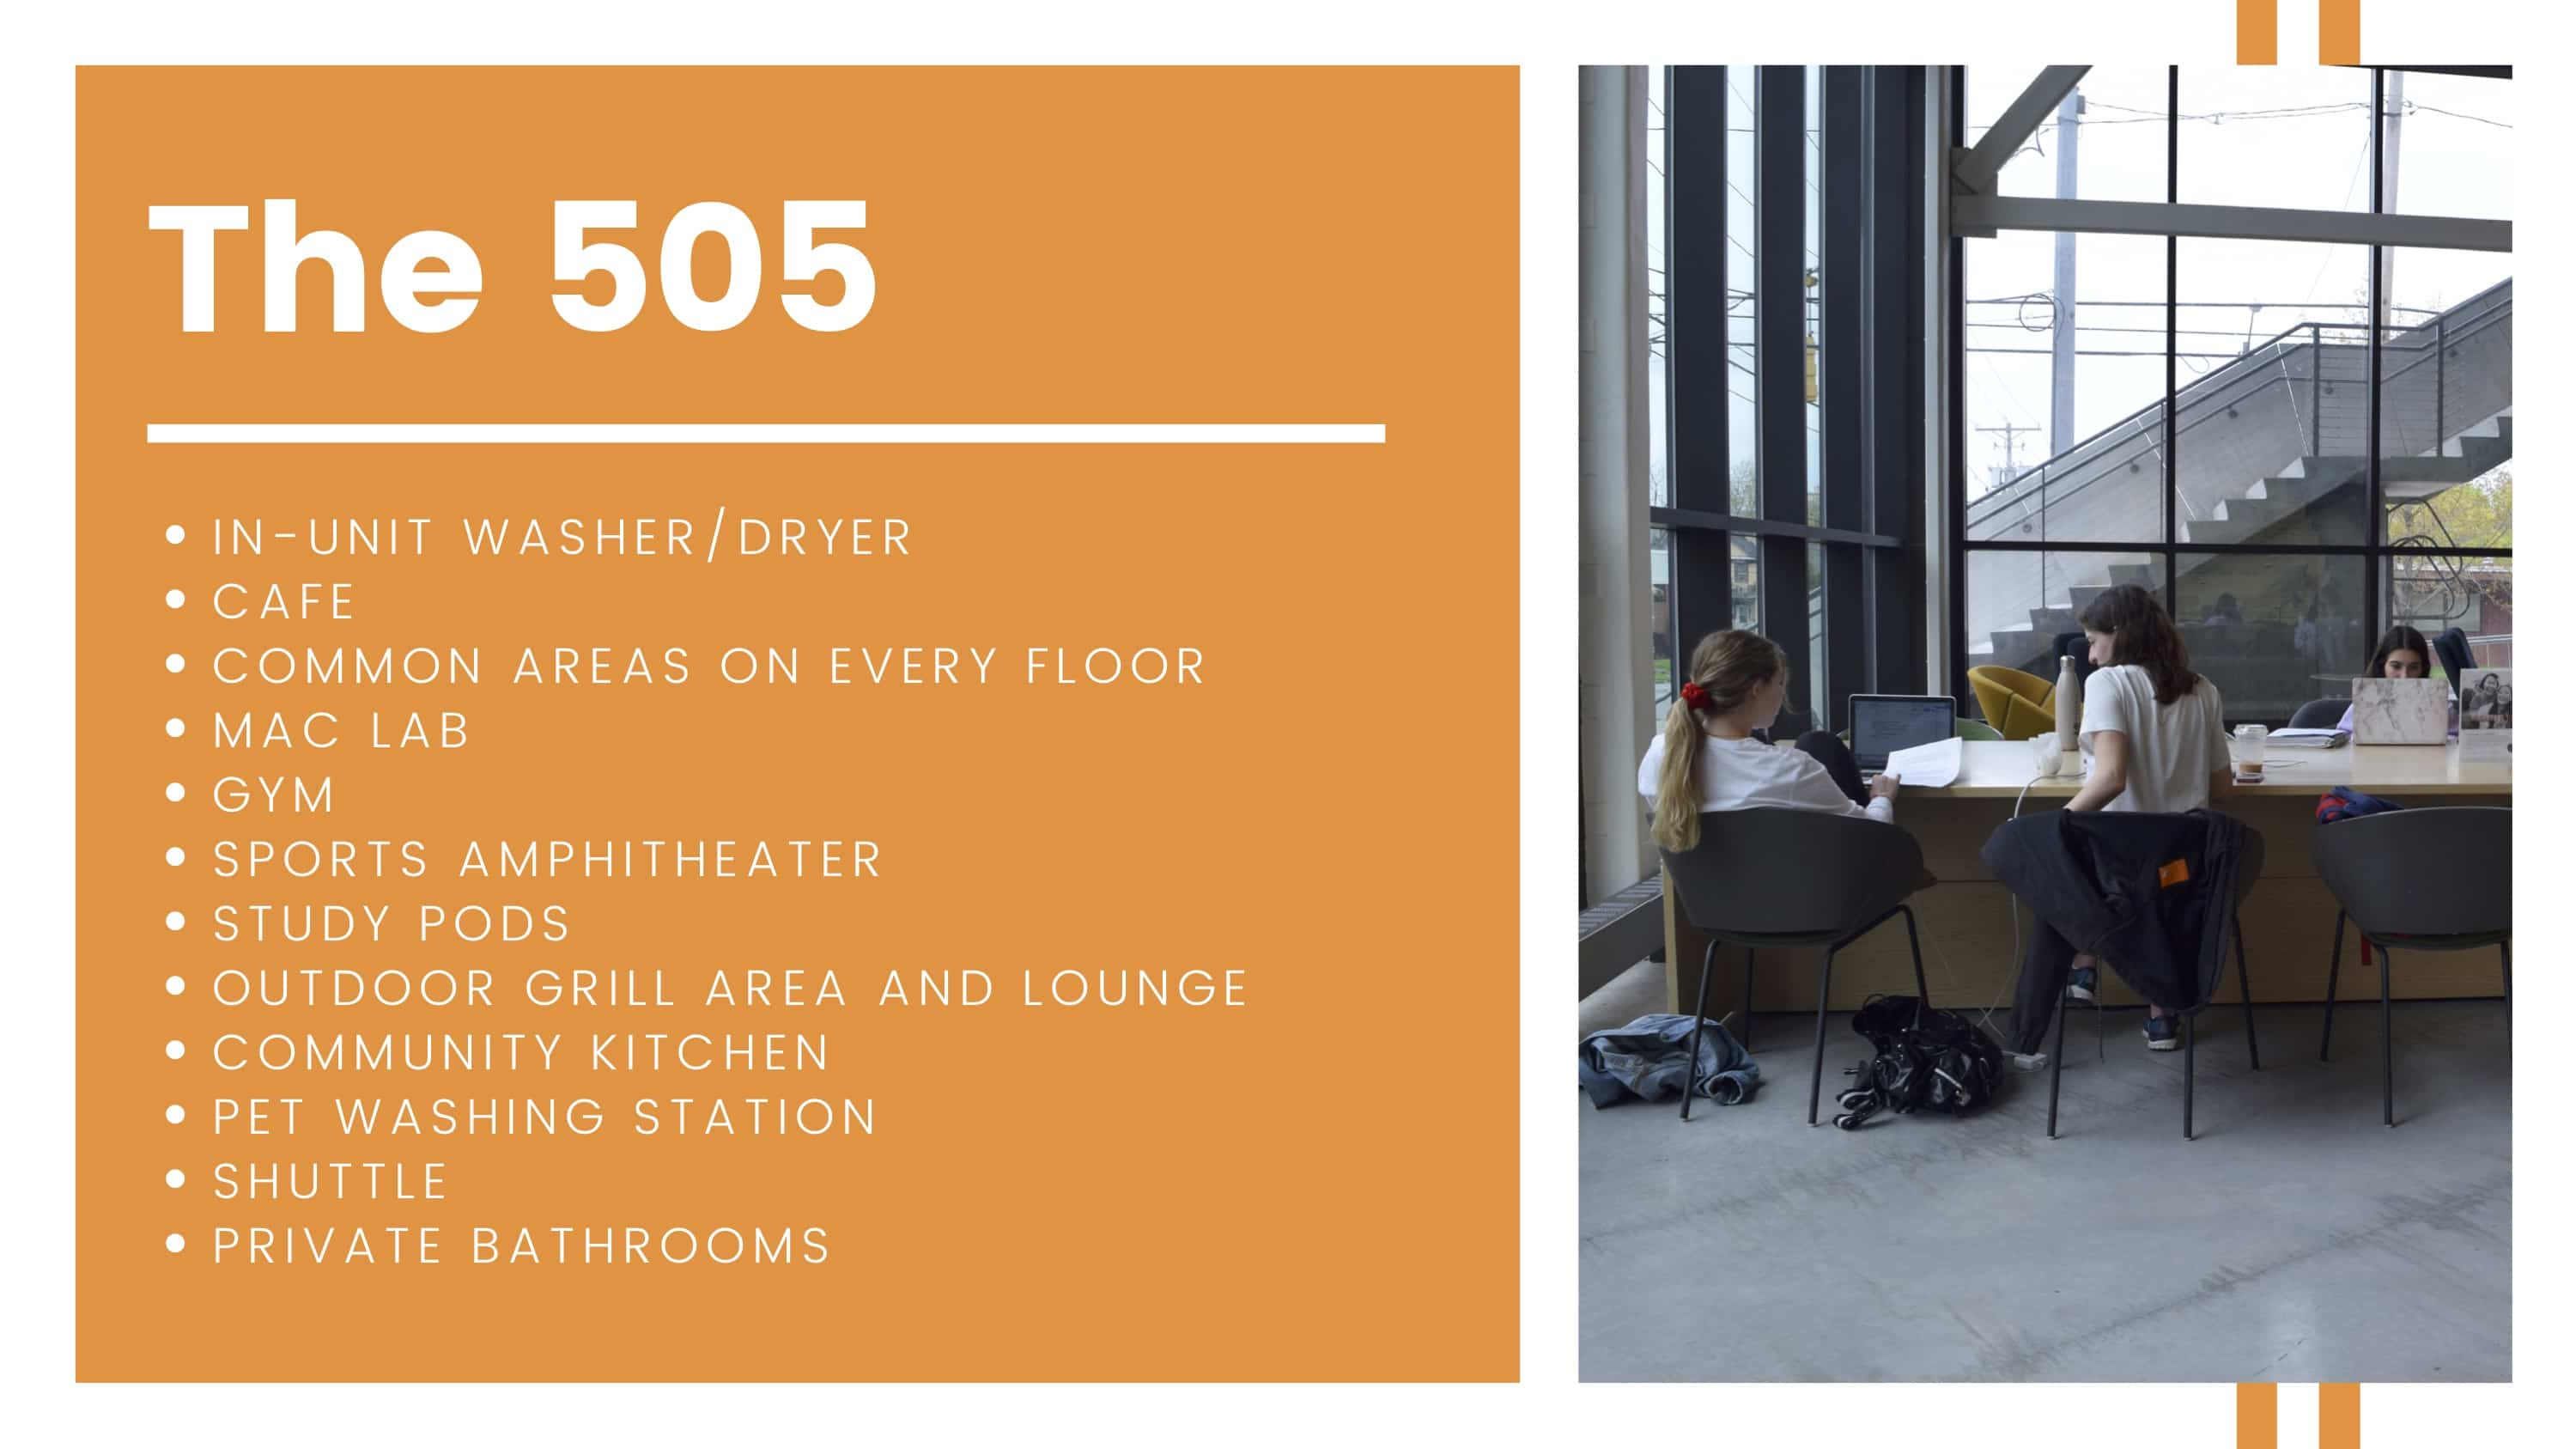 The 505 amenities breakdown